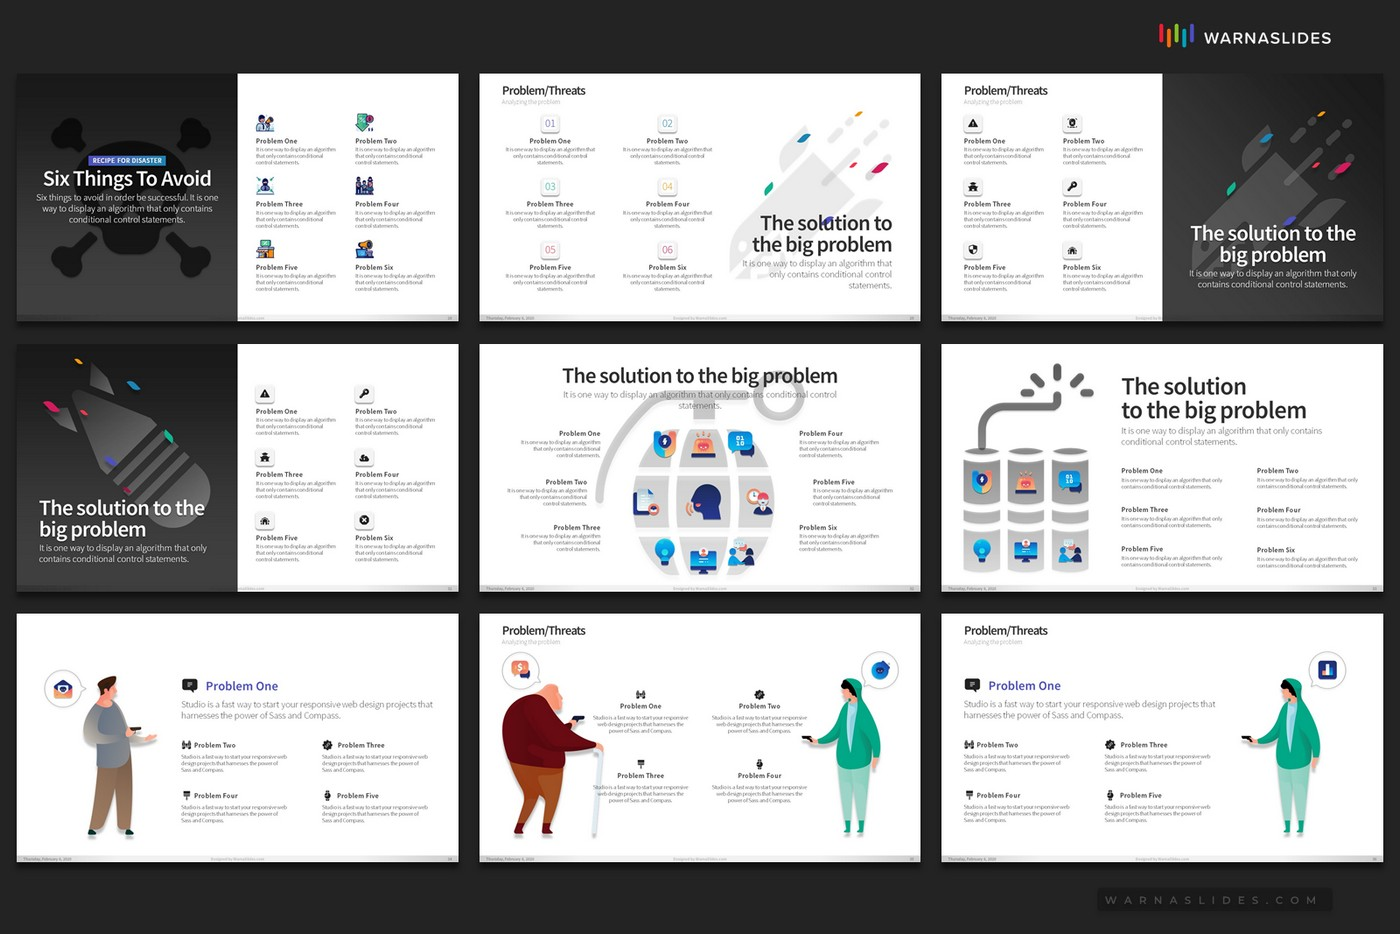 Problem-Threats-Risk-Management-Weaknesses-Services-Brainstorm-PowerPoint-Template-2020-for-Business-Pitch-Deck-Professional-Creative-Presentation-by-Warna-Slides-012